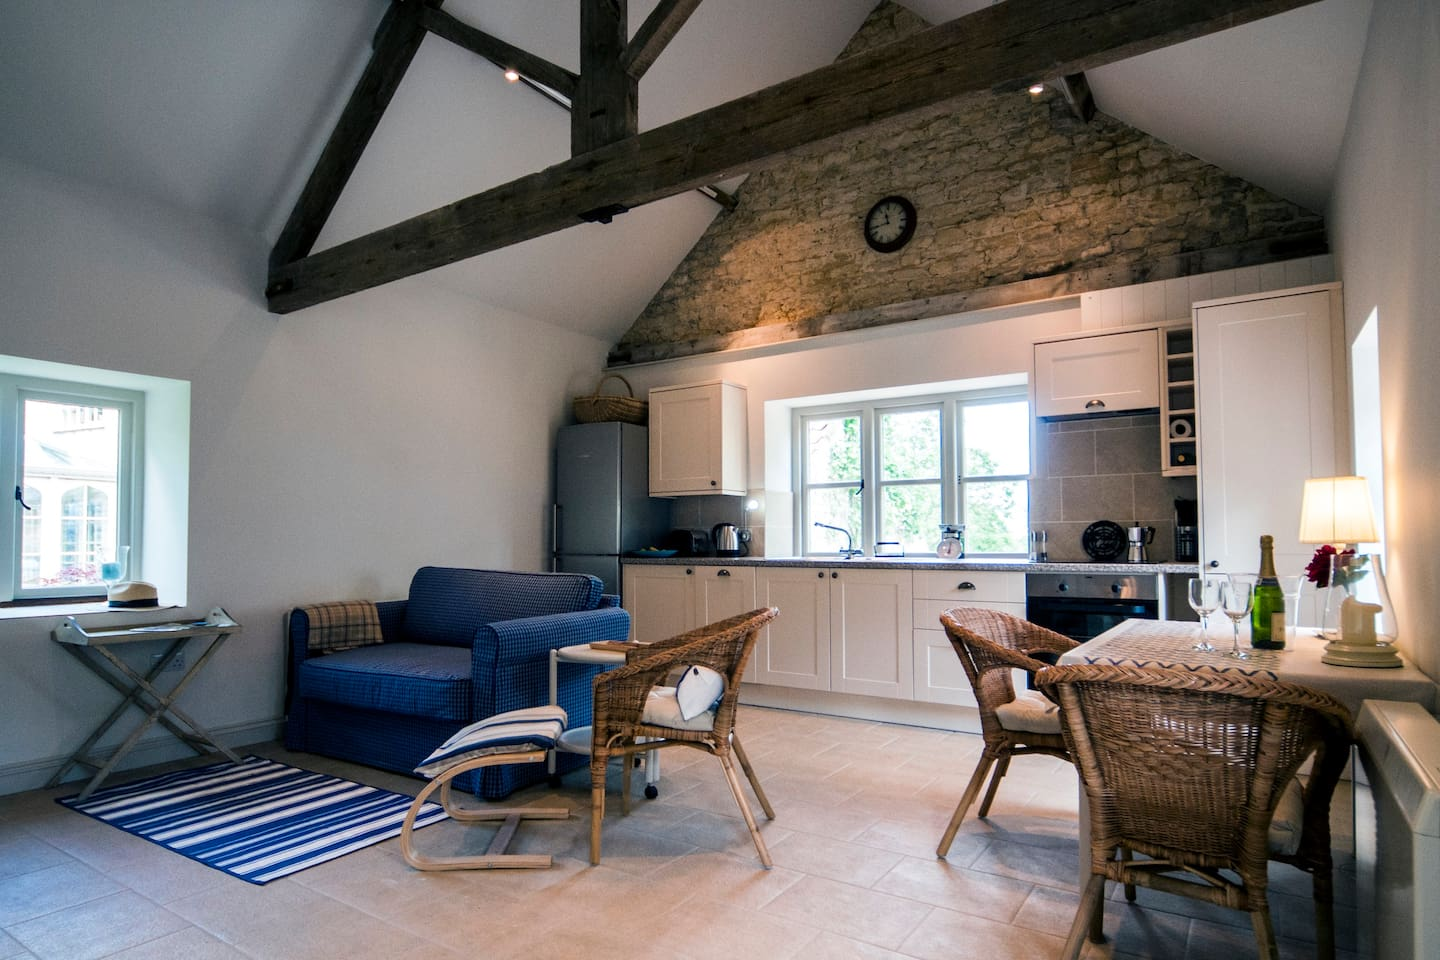 This is the sitting area with an AGA woodburner and windows on 3 sides. The stone wall and beams are original.